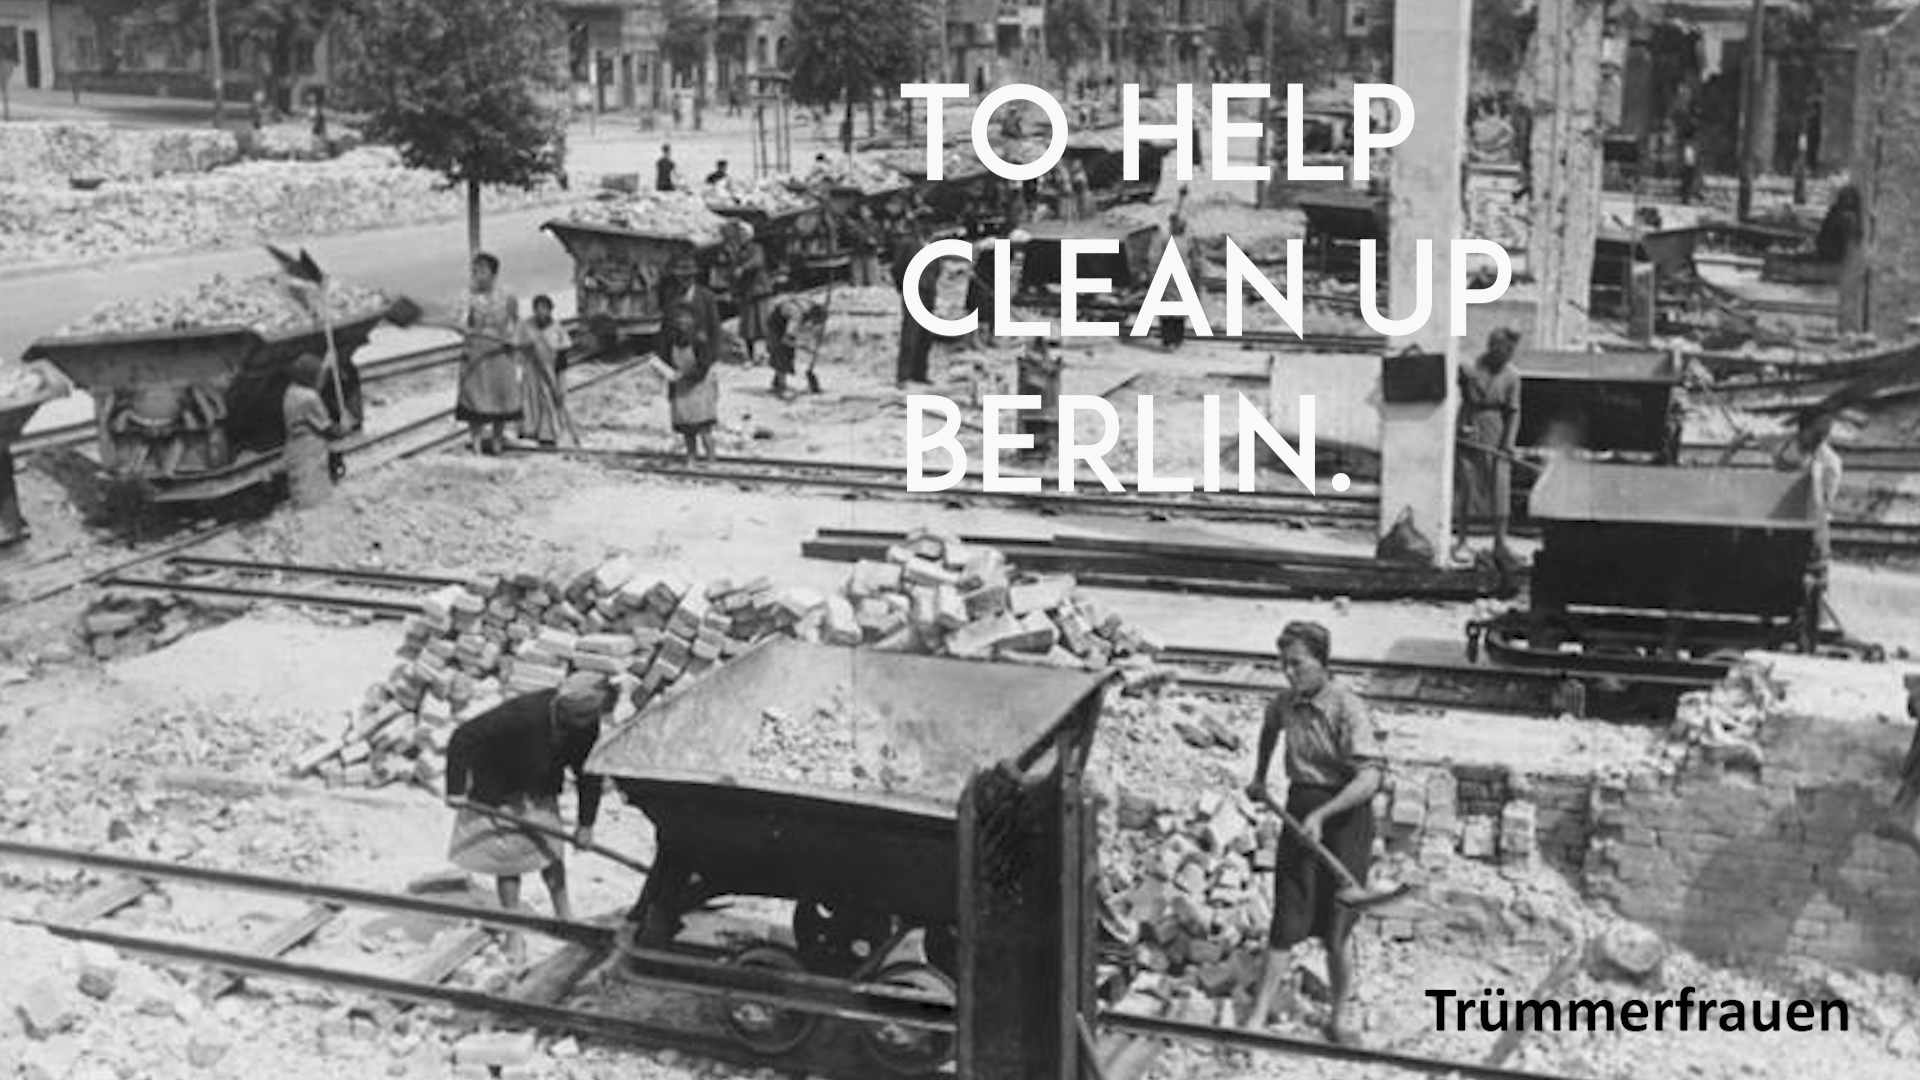 Trummerfrauen clean up